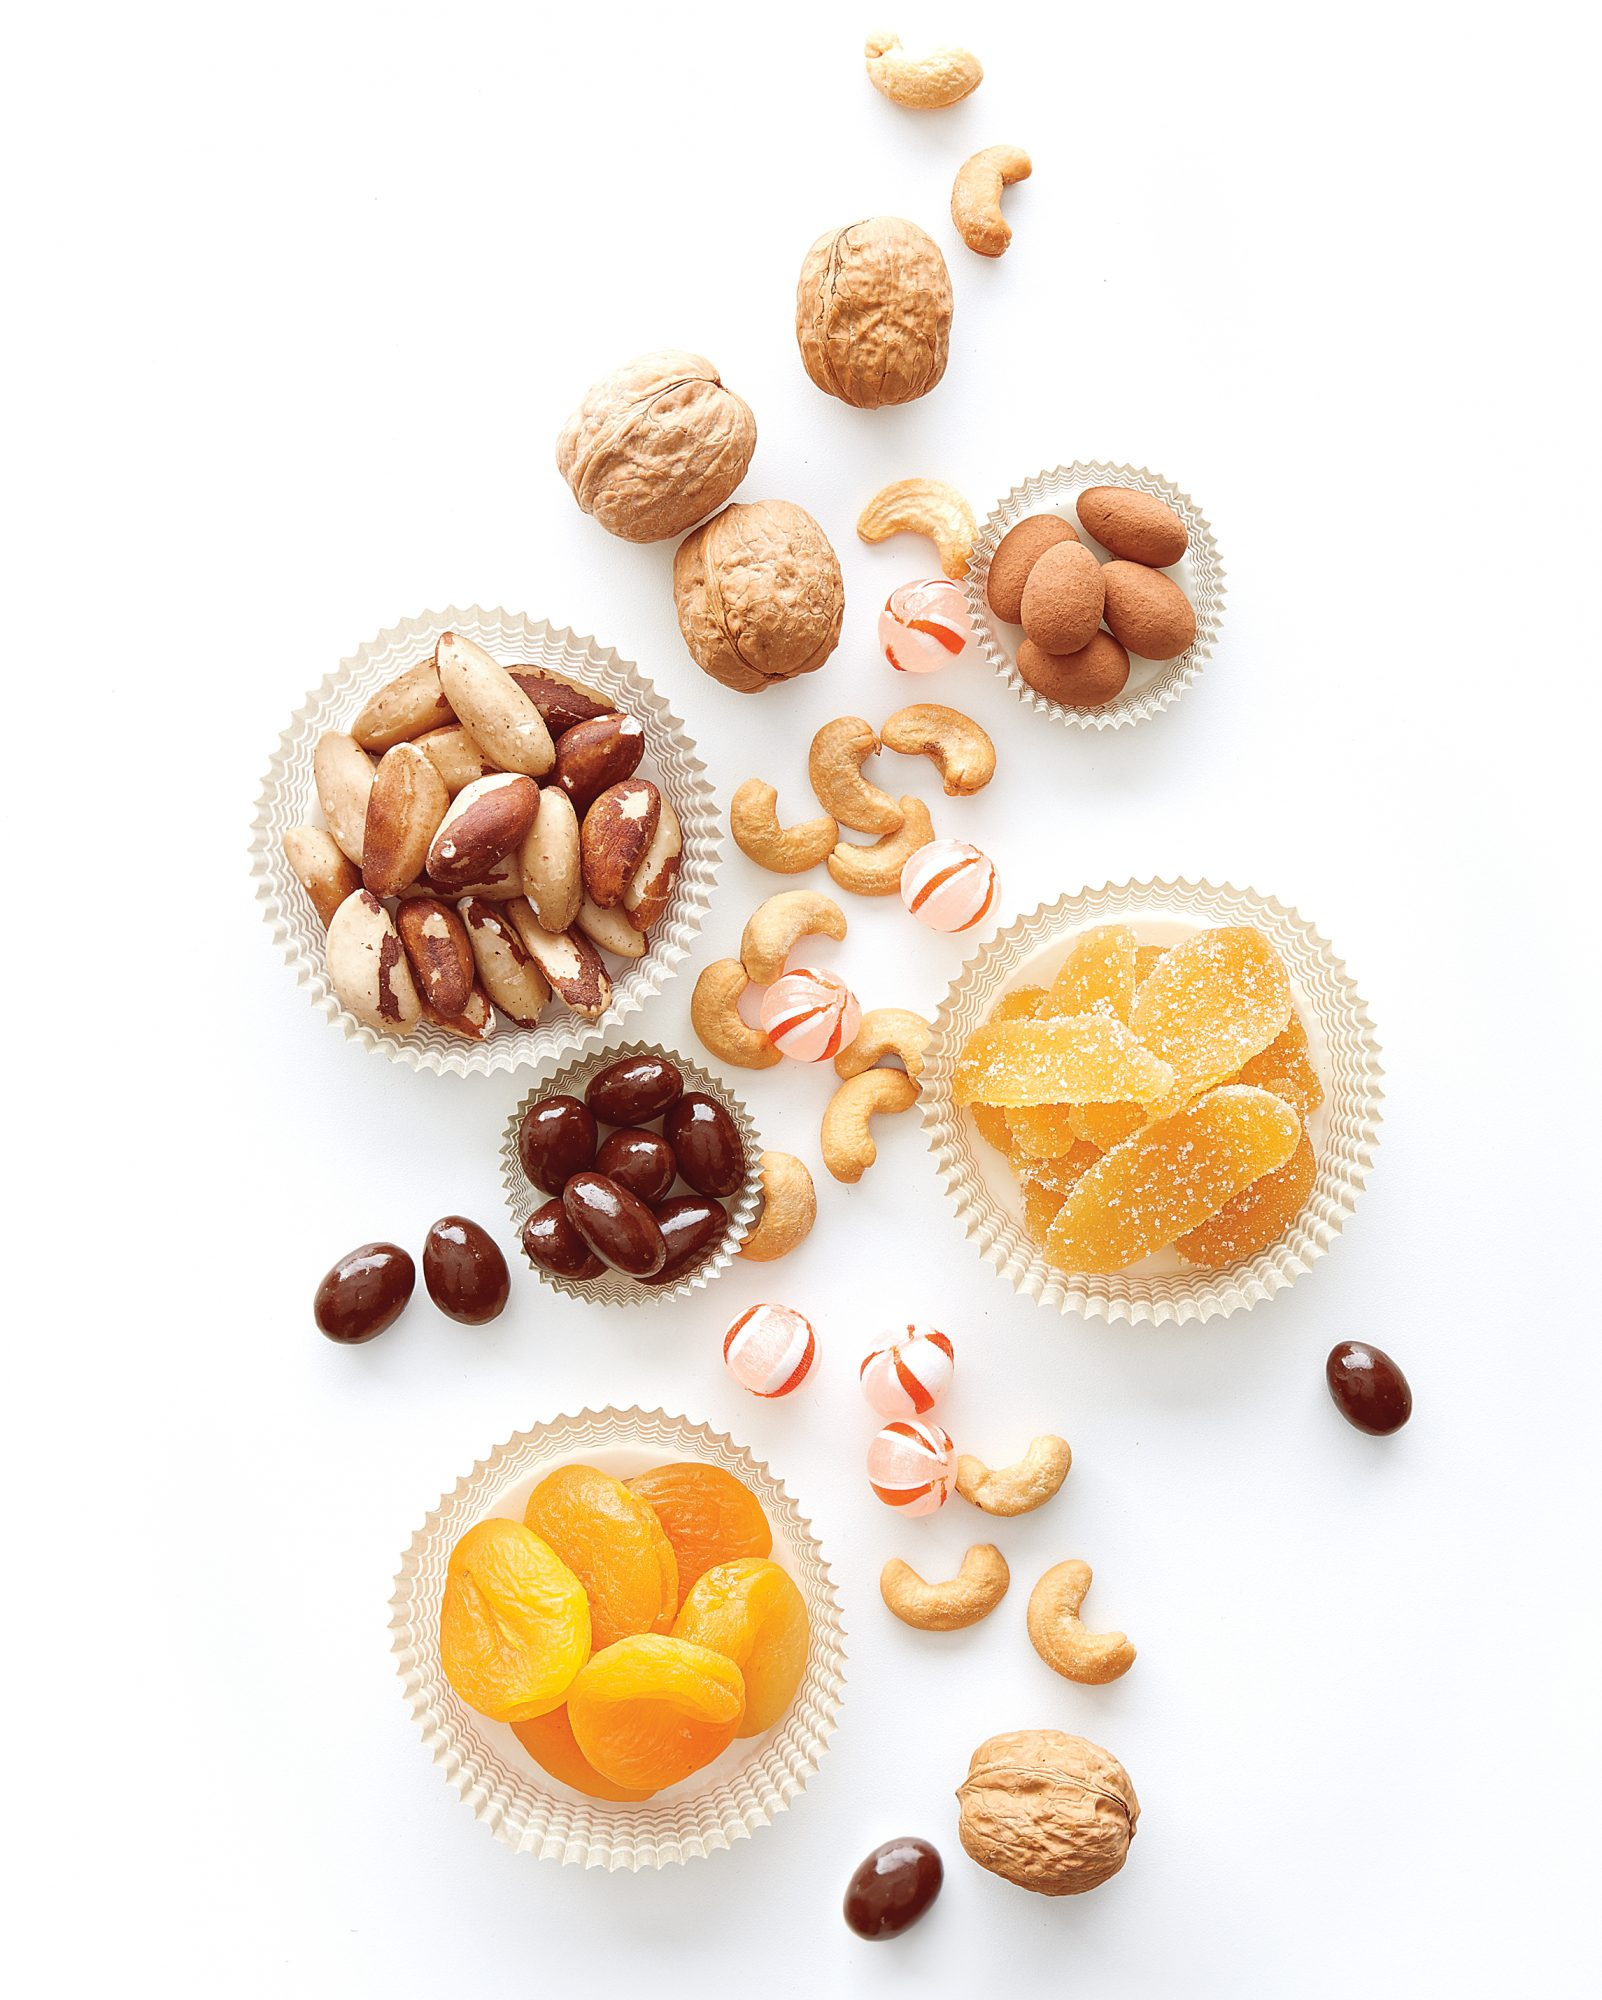 nuts-candy-fruit-008-d112122-comp.jpg